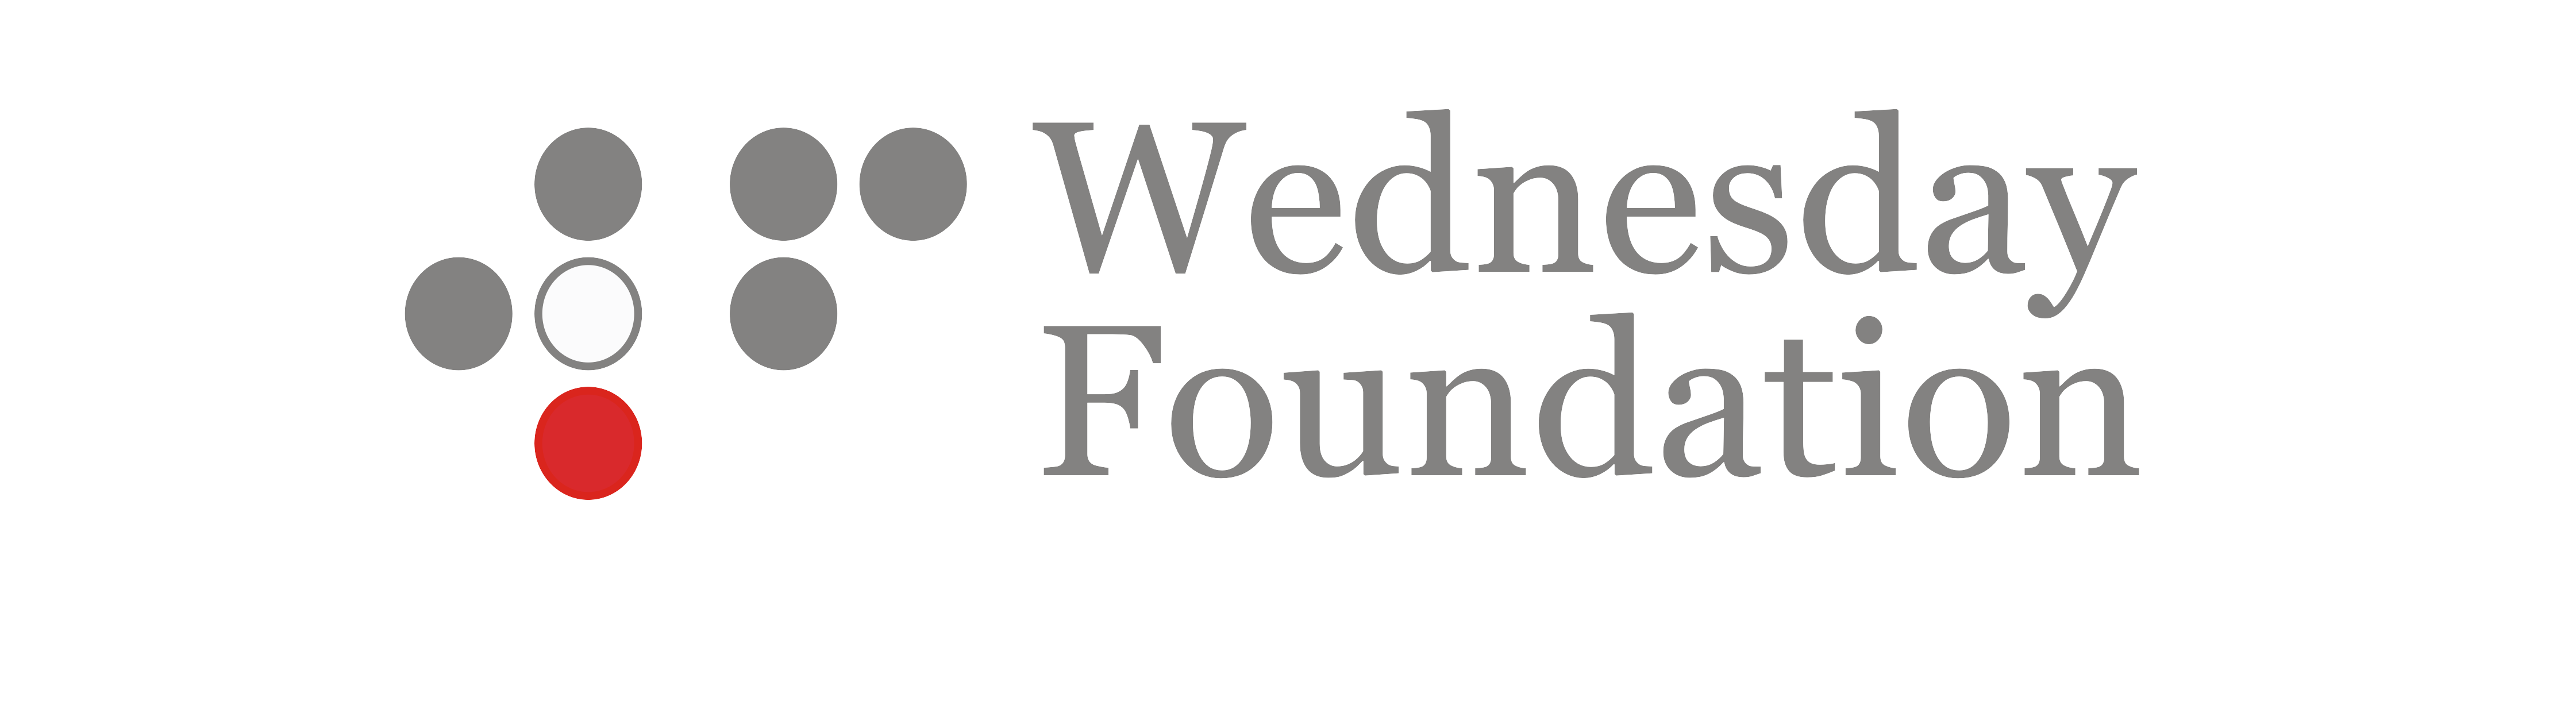 Wednesday Foundation